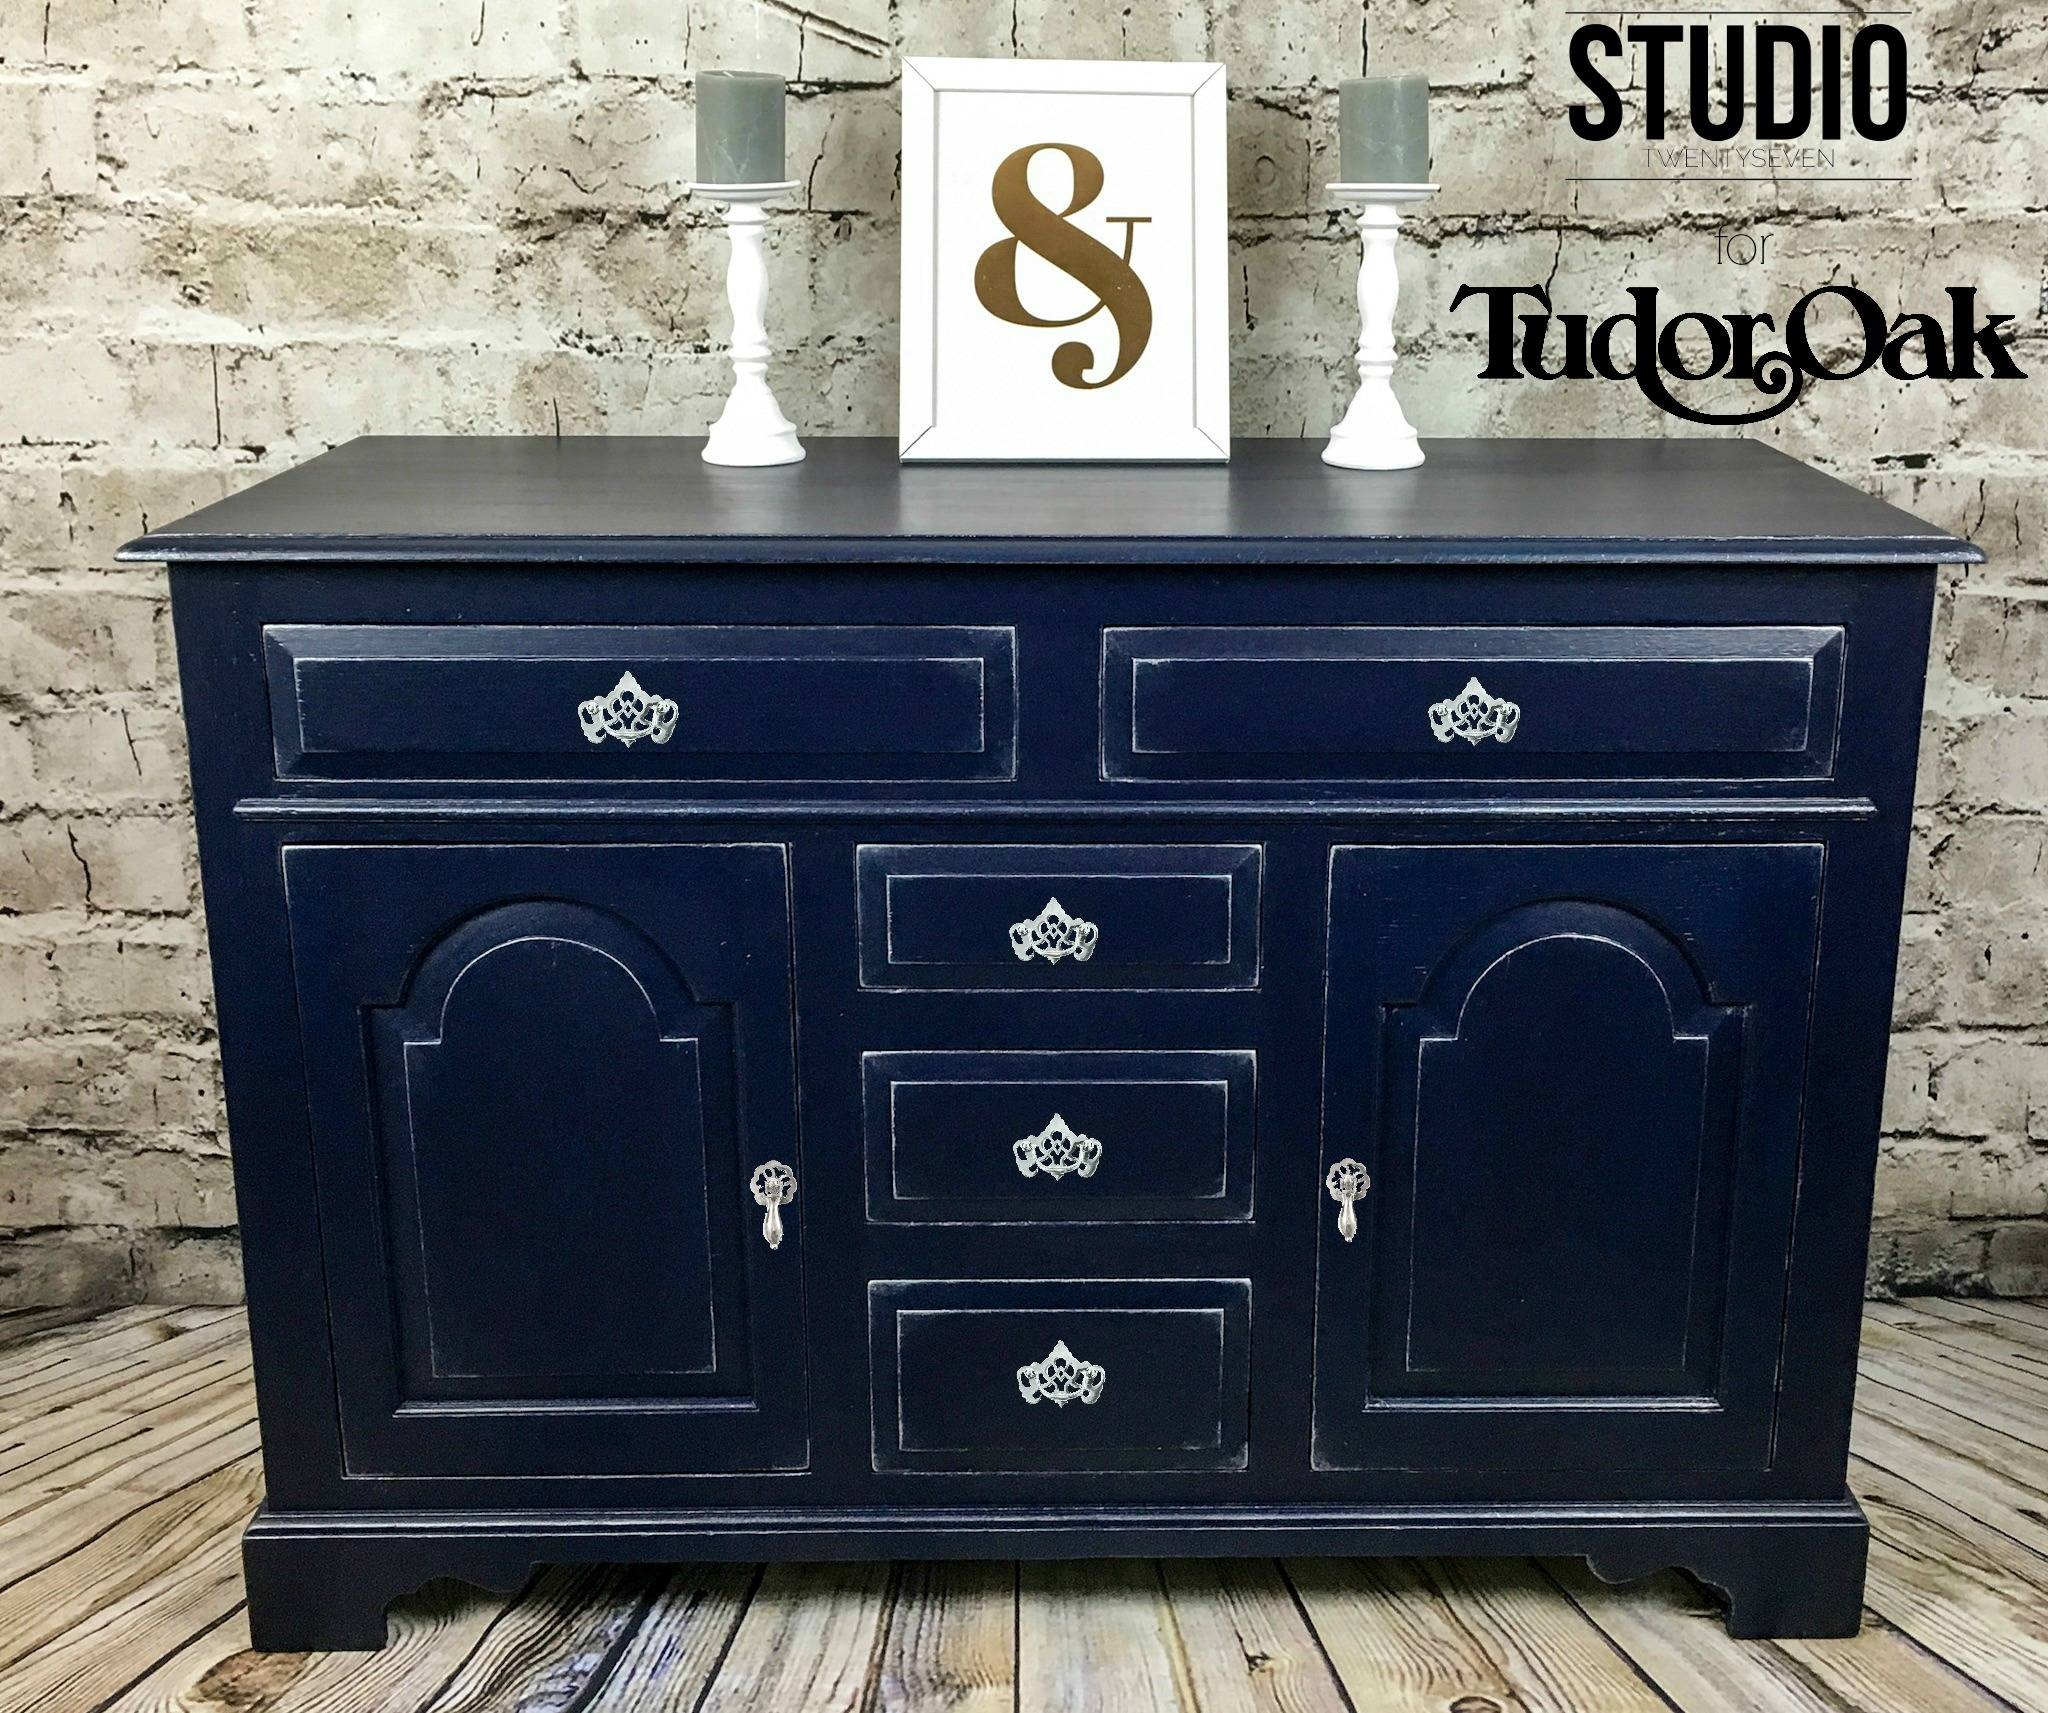 Tudor Oak Navy Purple And Silver Sideboard – Studio27 for Purple Sideboards (Image 28 of 30)